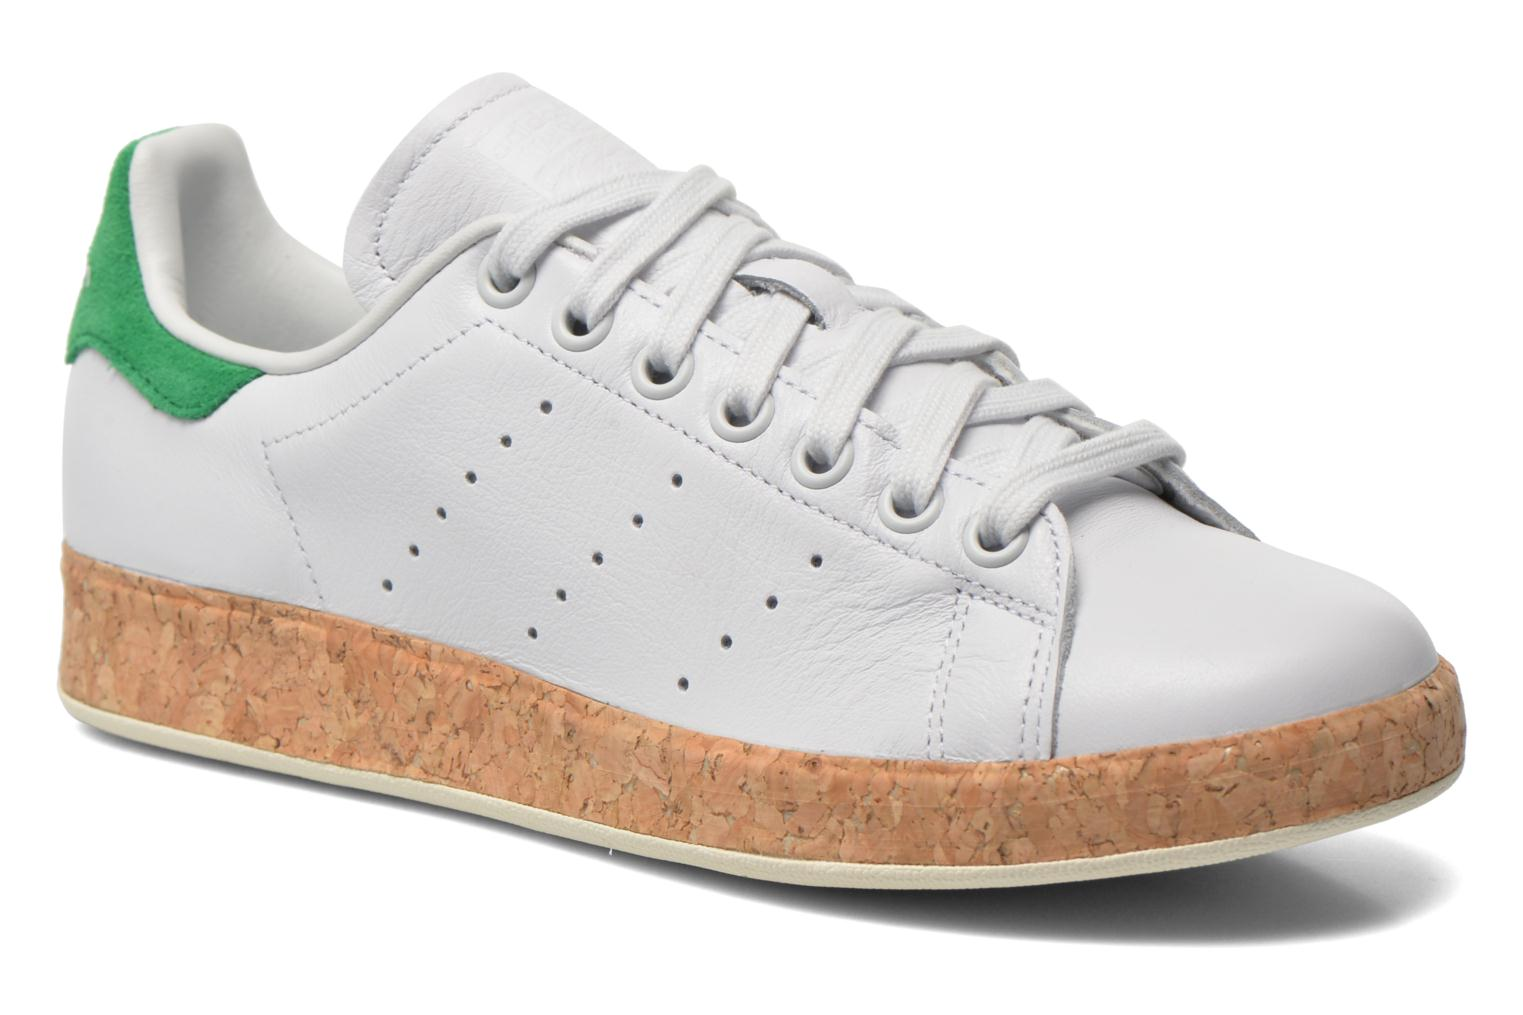 adidas stan smith semelle liege